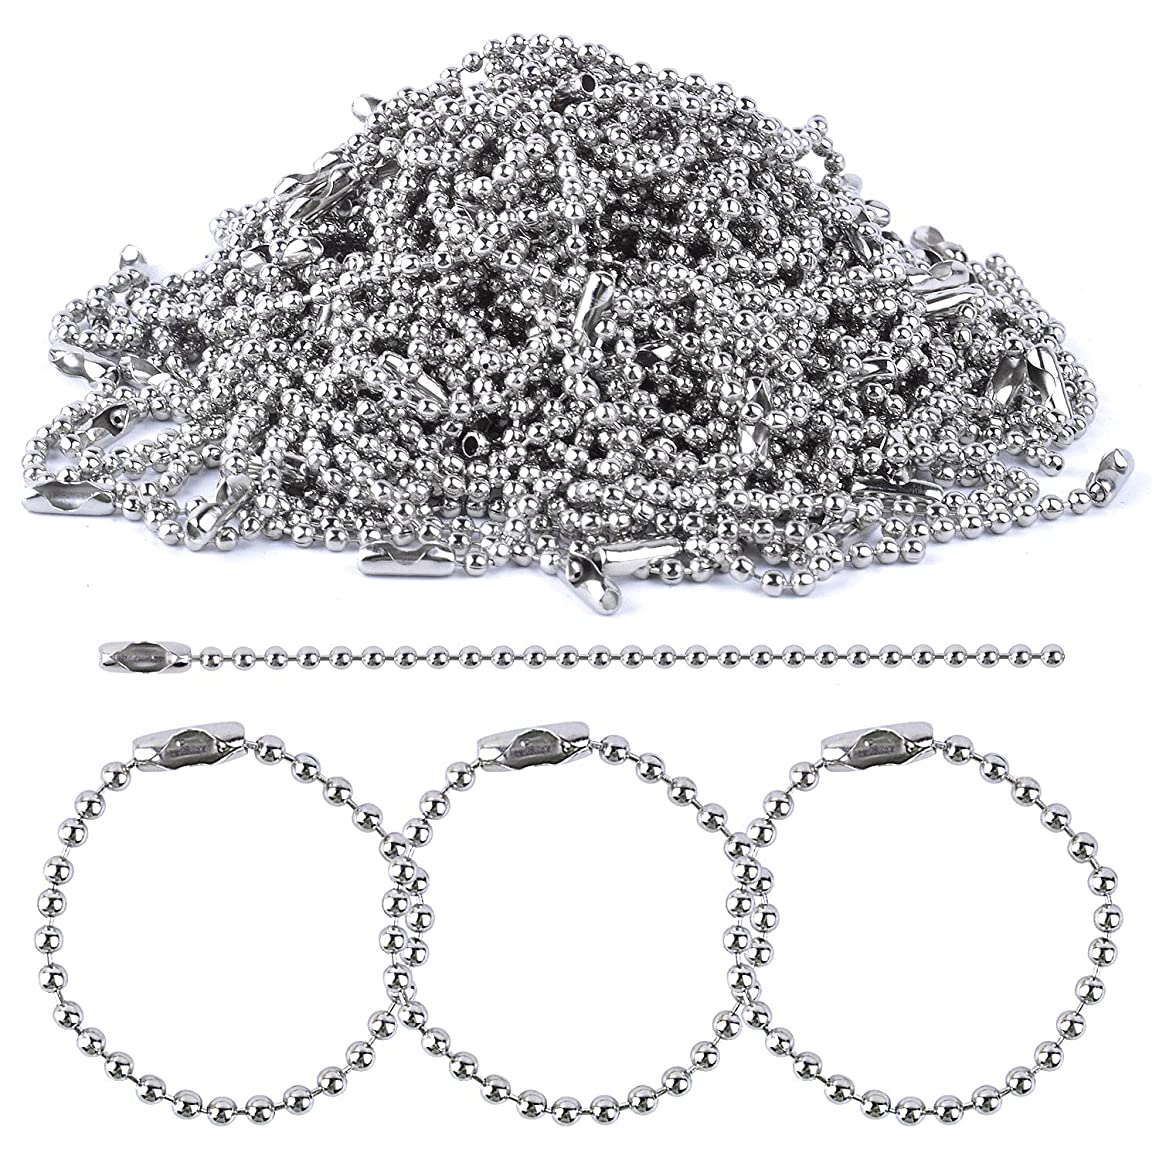 BronaGrand 150 Pieces Ball Chains Bead Connector Clasp 2.4 mm Diameter Keychain Tag Key Rings 100mm Long